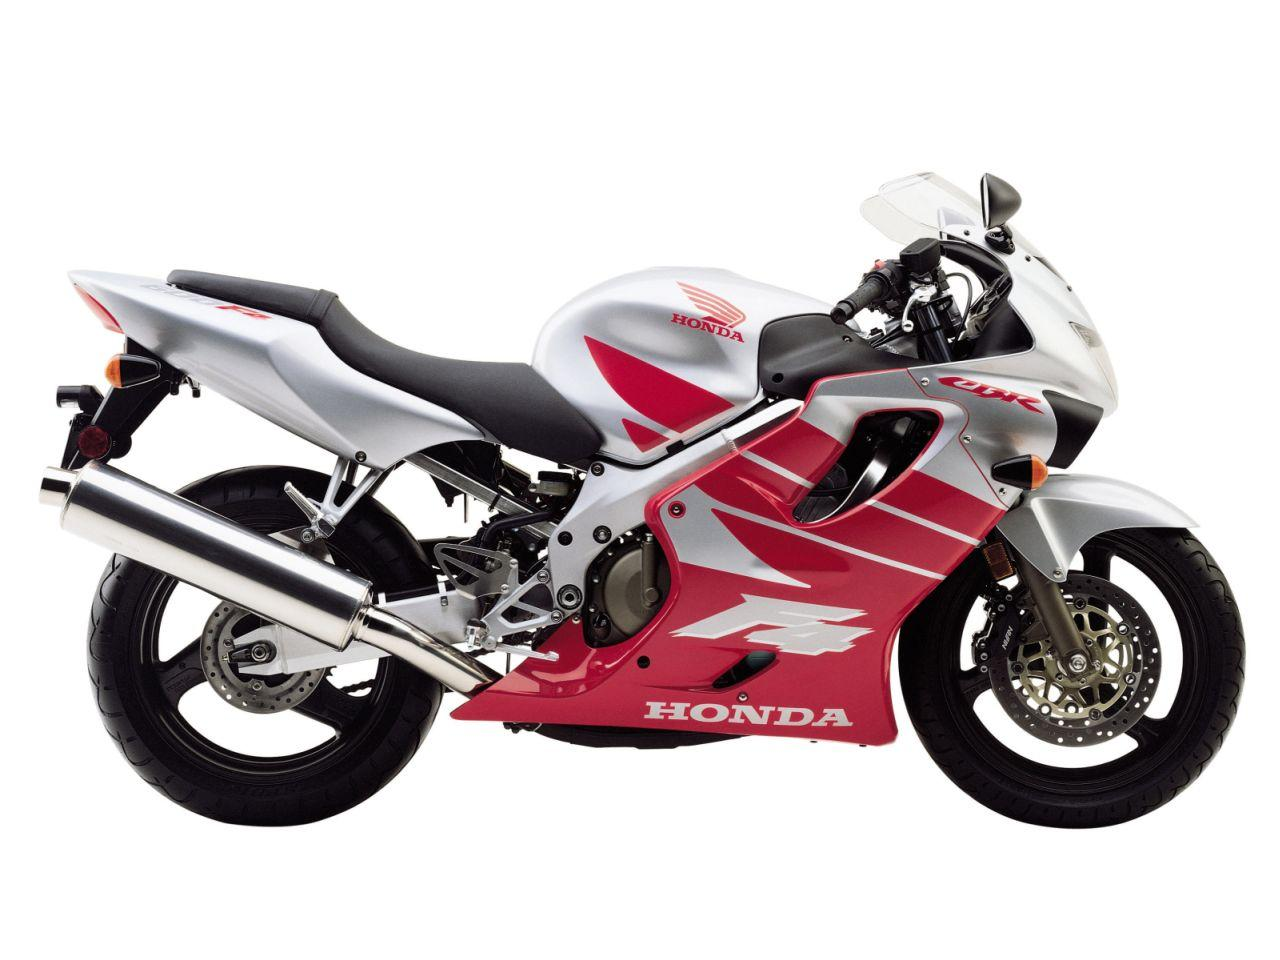 1999 Honda CBR 600 F review. Review of the CBR 600 F submitted on  2012-06-09. I have recently gotten a 99´ 600 f4 and I absolutely love it .